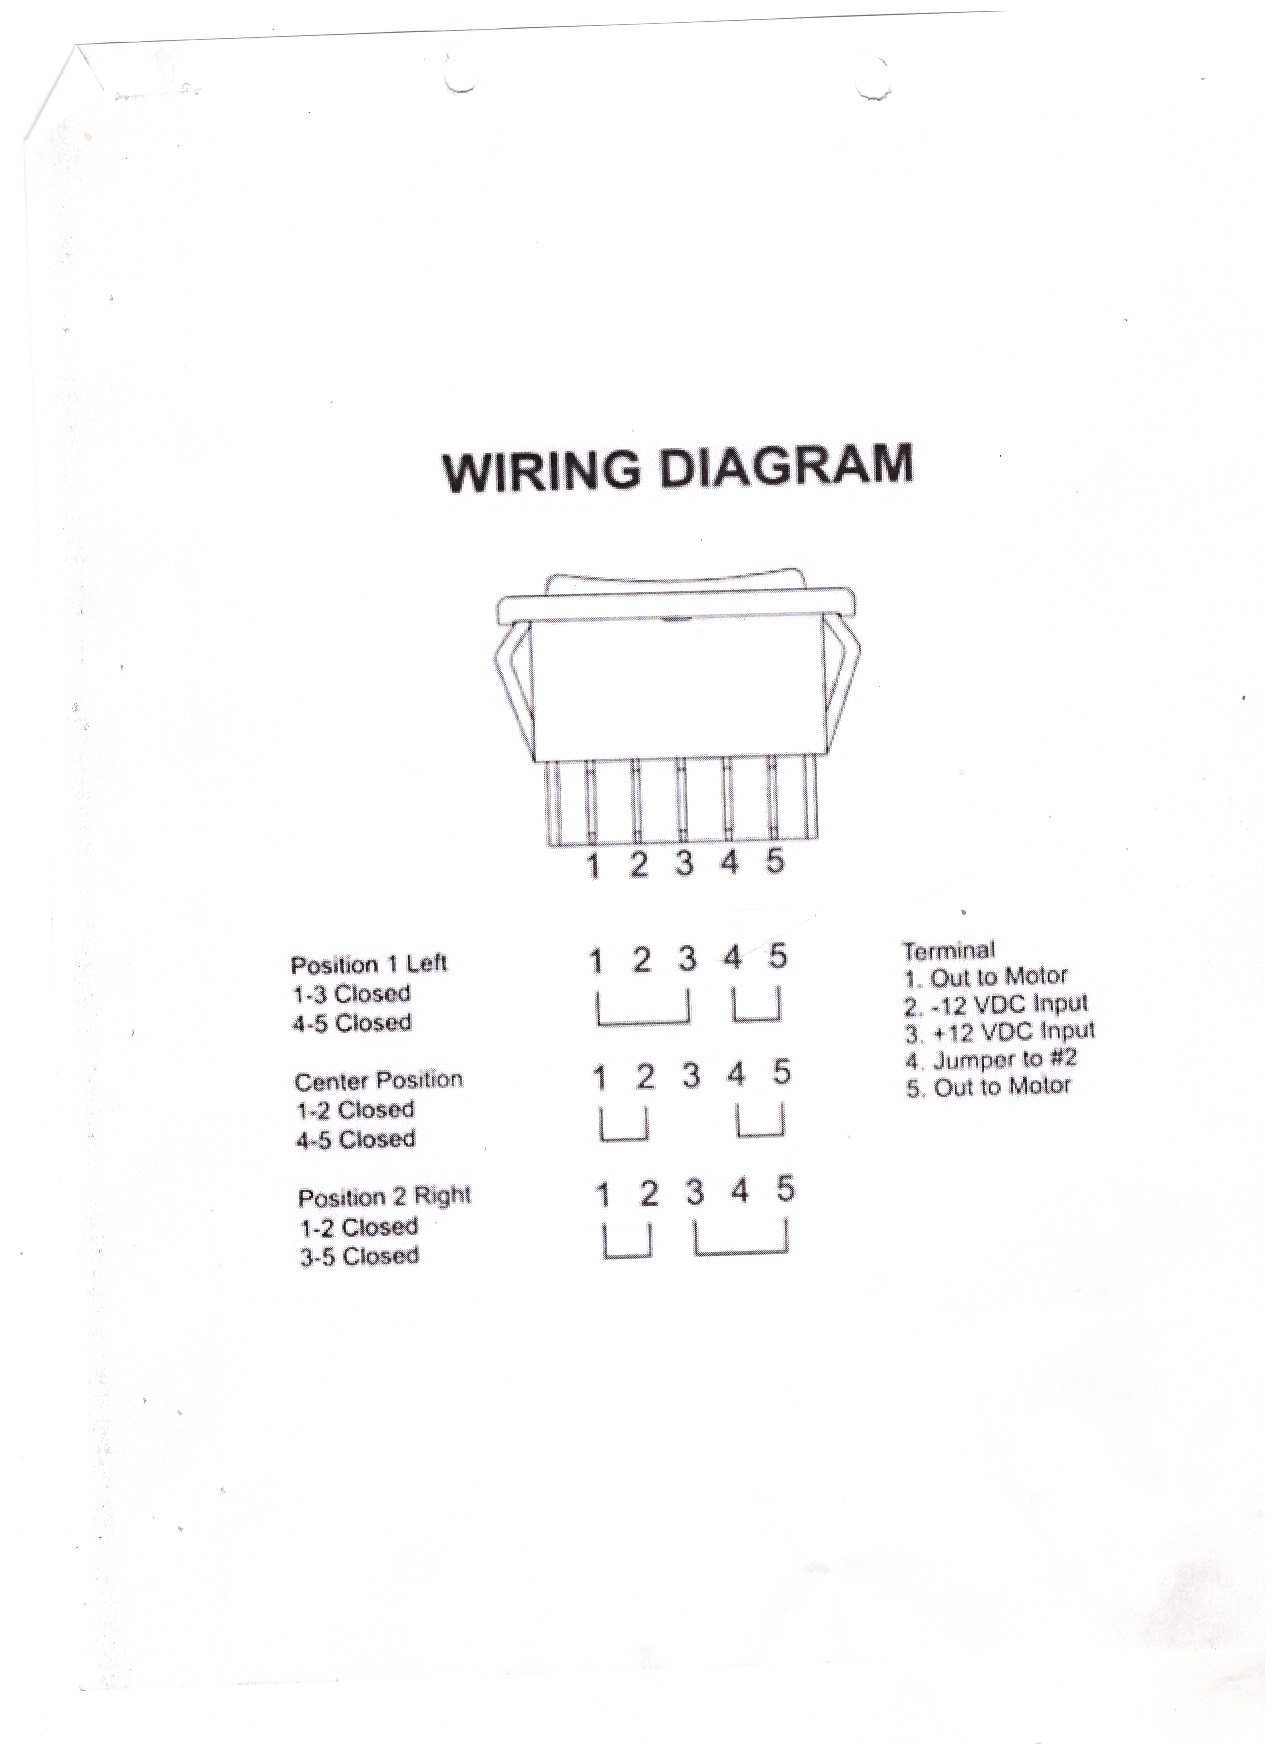 3 pin switch wiring diagram 3 way switch light wiring diagram 6 prong toggle switch diagram at readyjetset.co